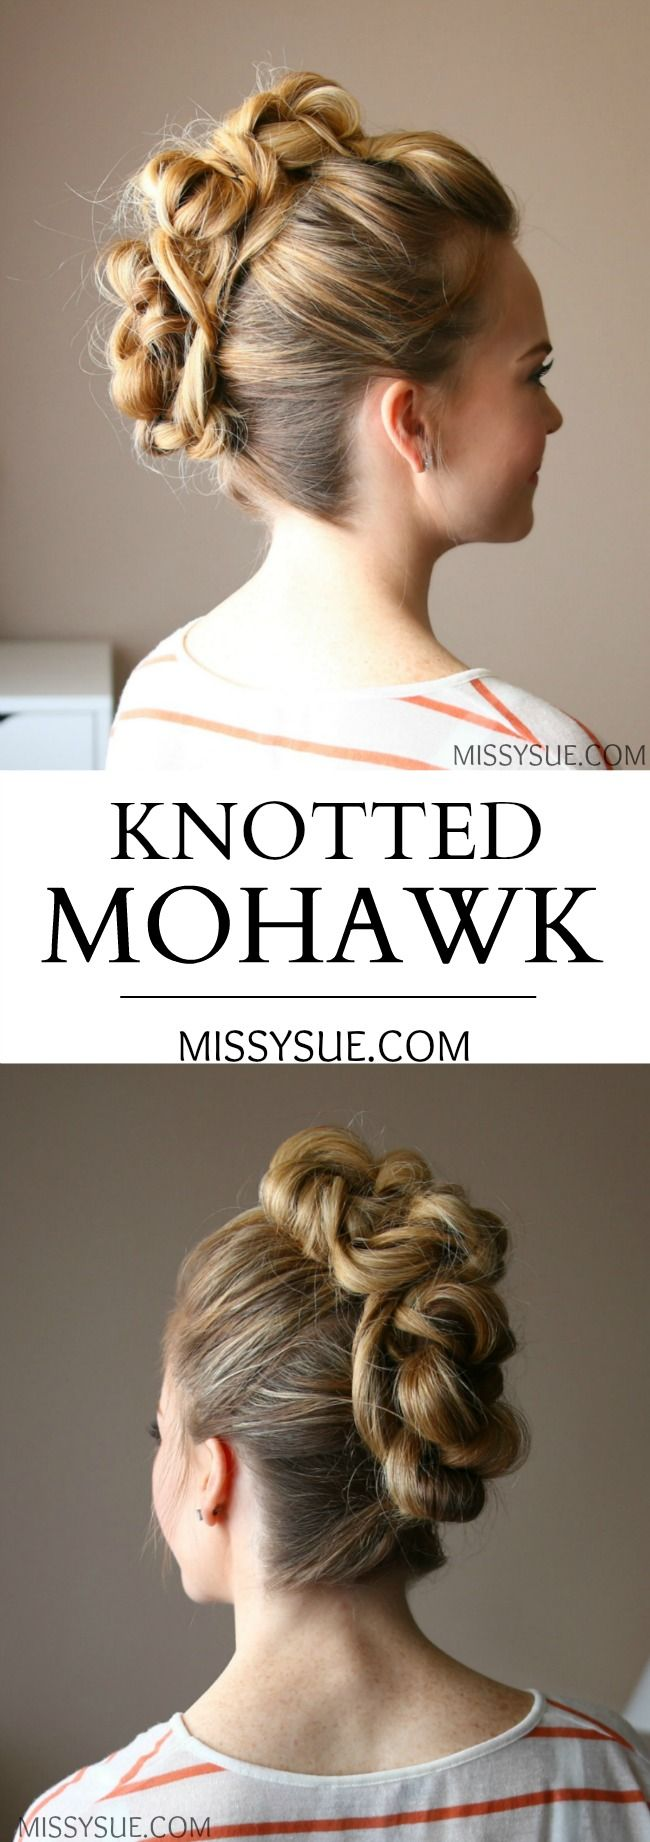 Knotted Mohawk